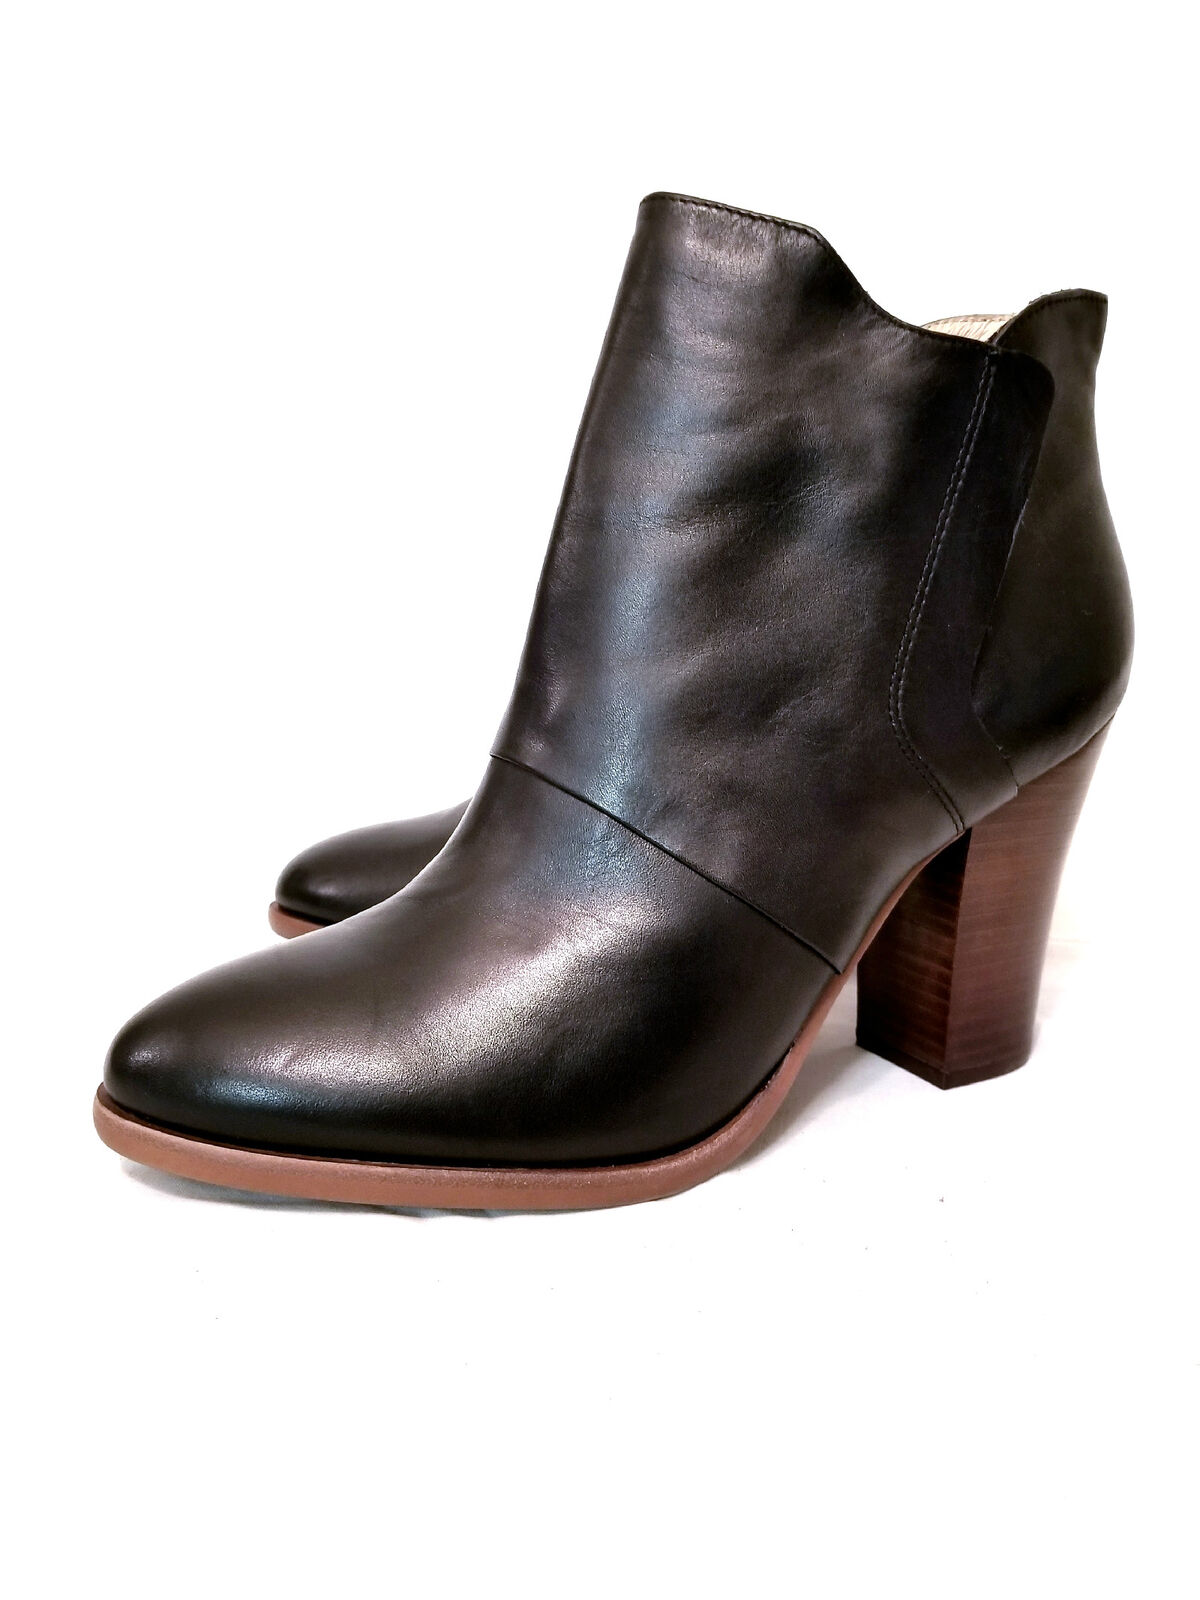 Halogen Women's Black Leather Ankle Boot Size 11 Retail $ 130